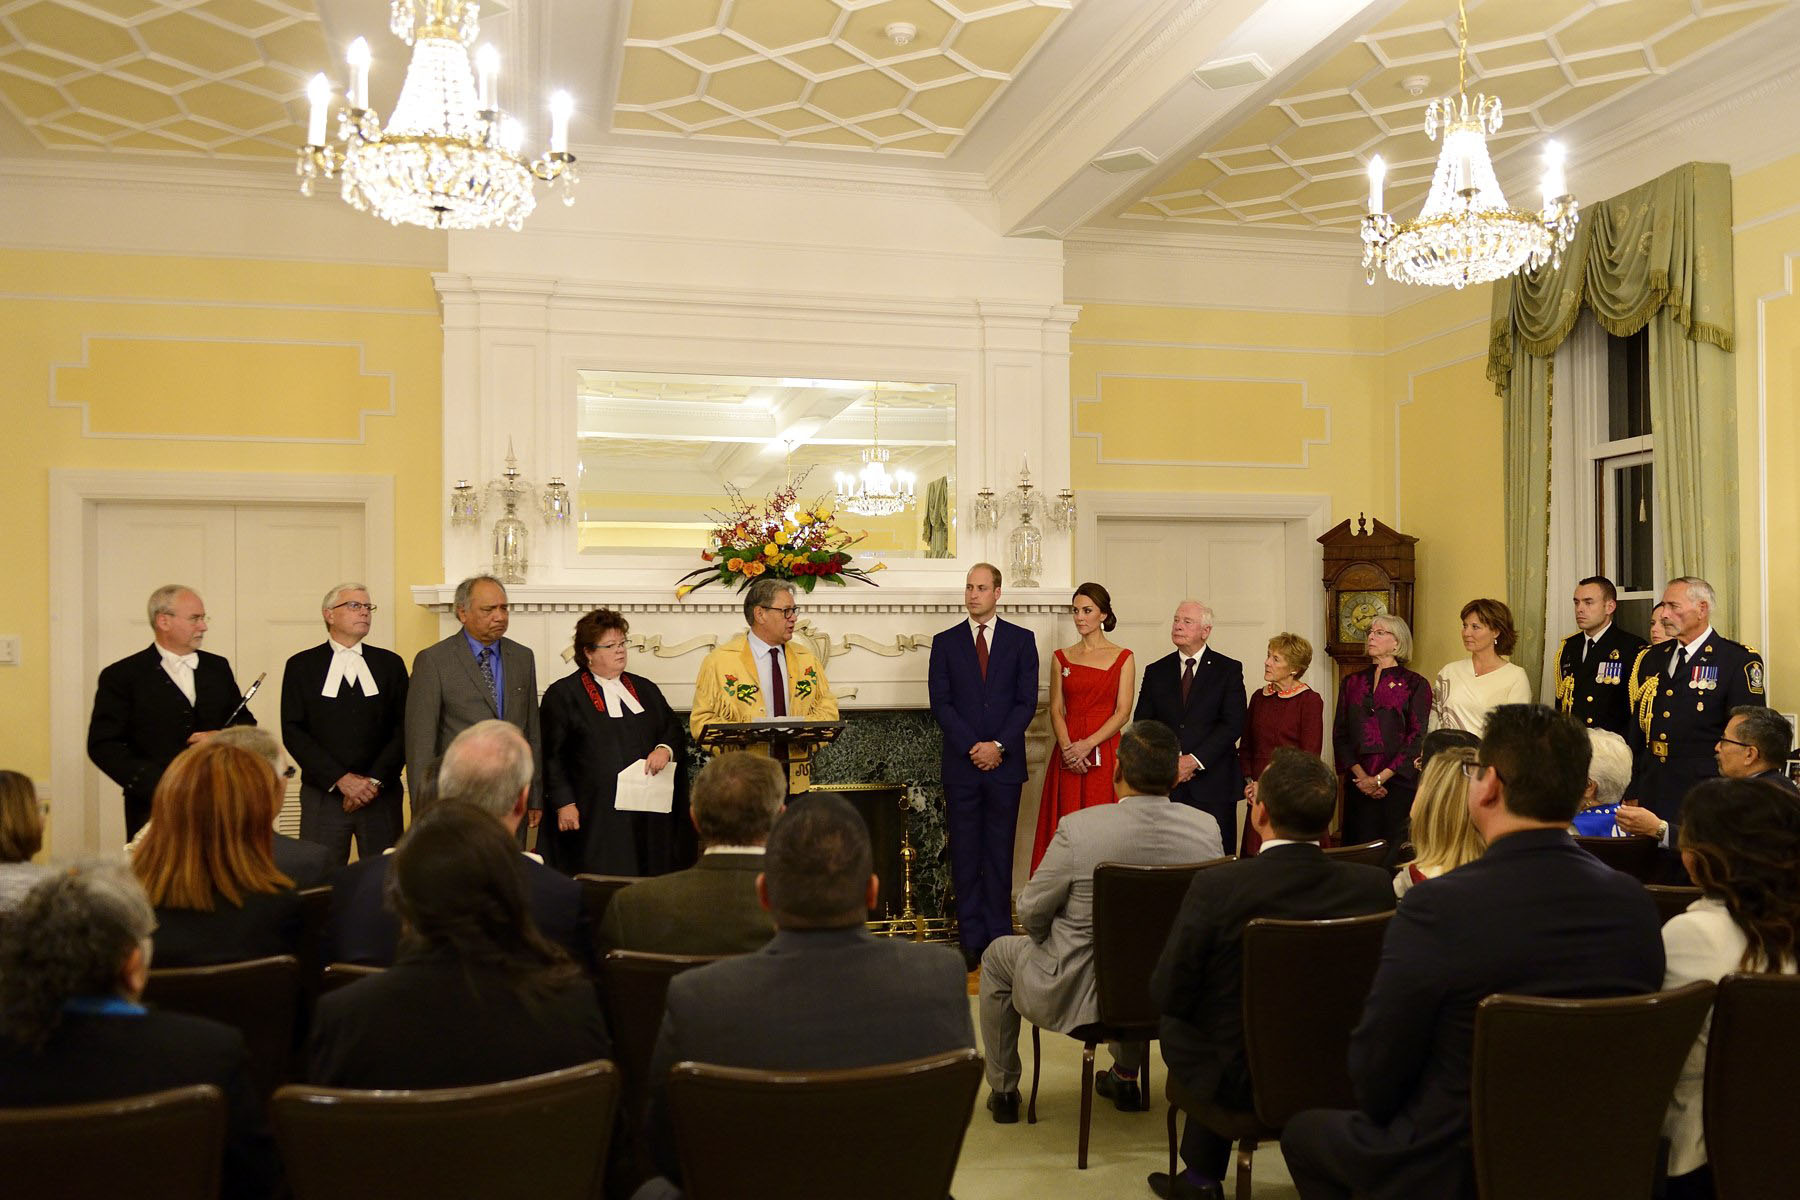 Their Excellencies joined Their Royal Highnesses at a Black Rod ceremony followed by a reception at Government House.